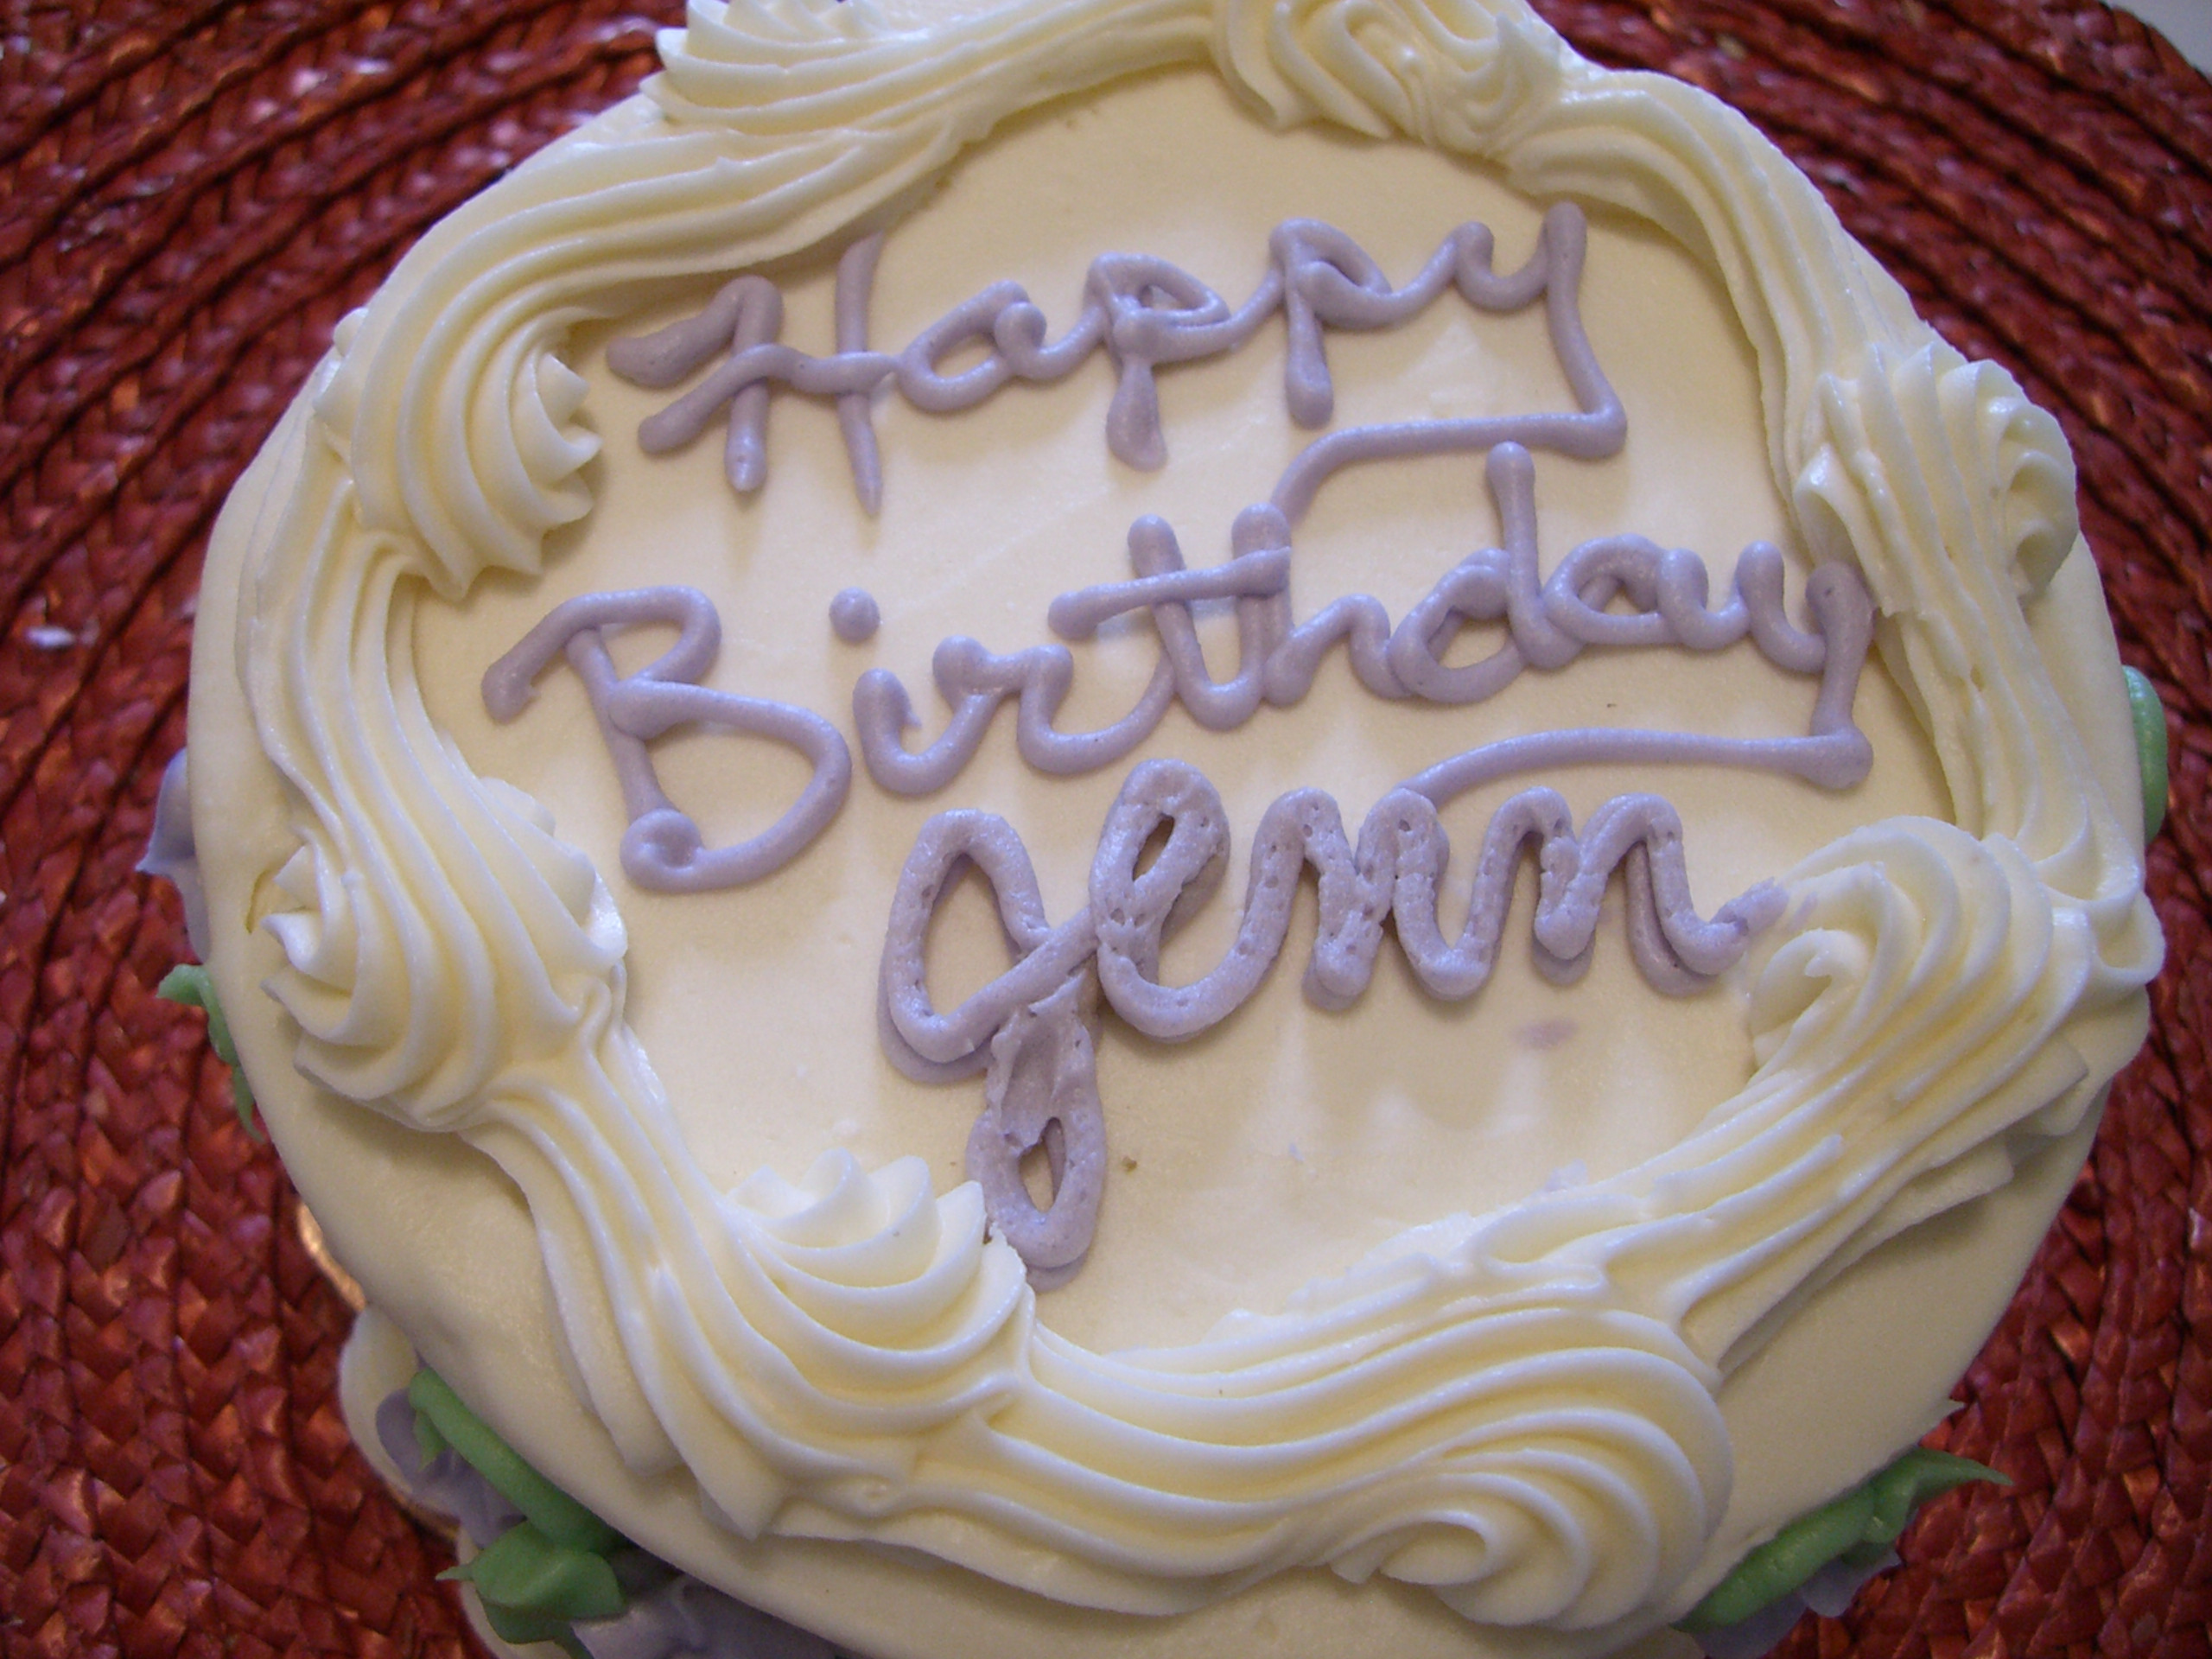 Best ideas about Whole Foods Birthday Cake . Save or Pin Birthday 'cakes' — eating bender Now.